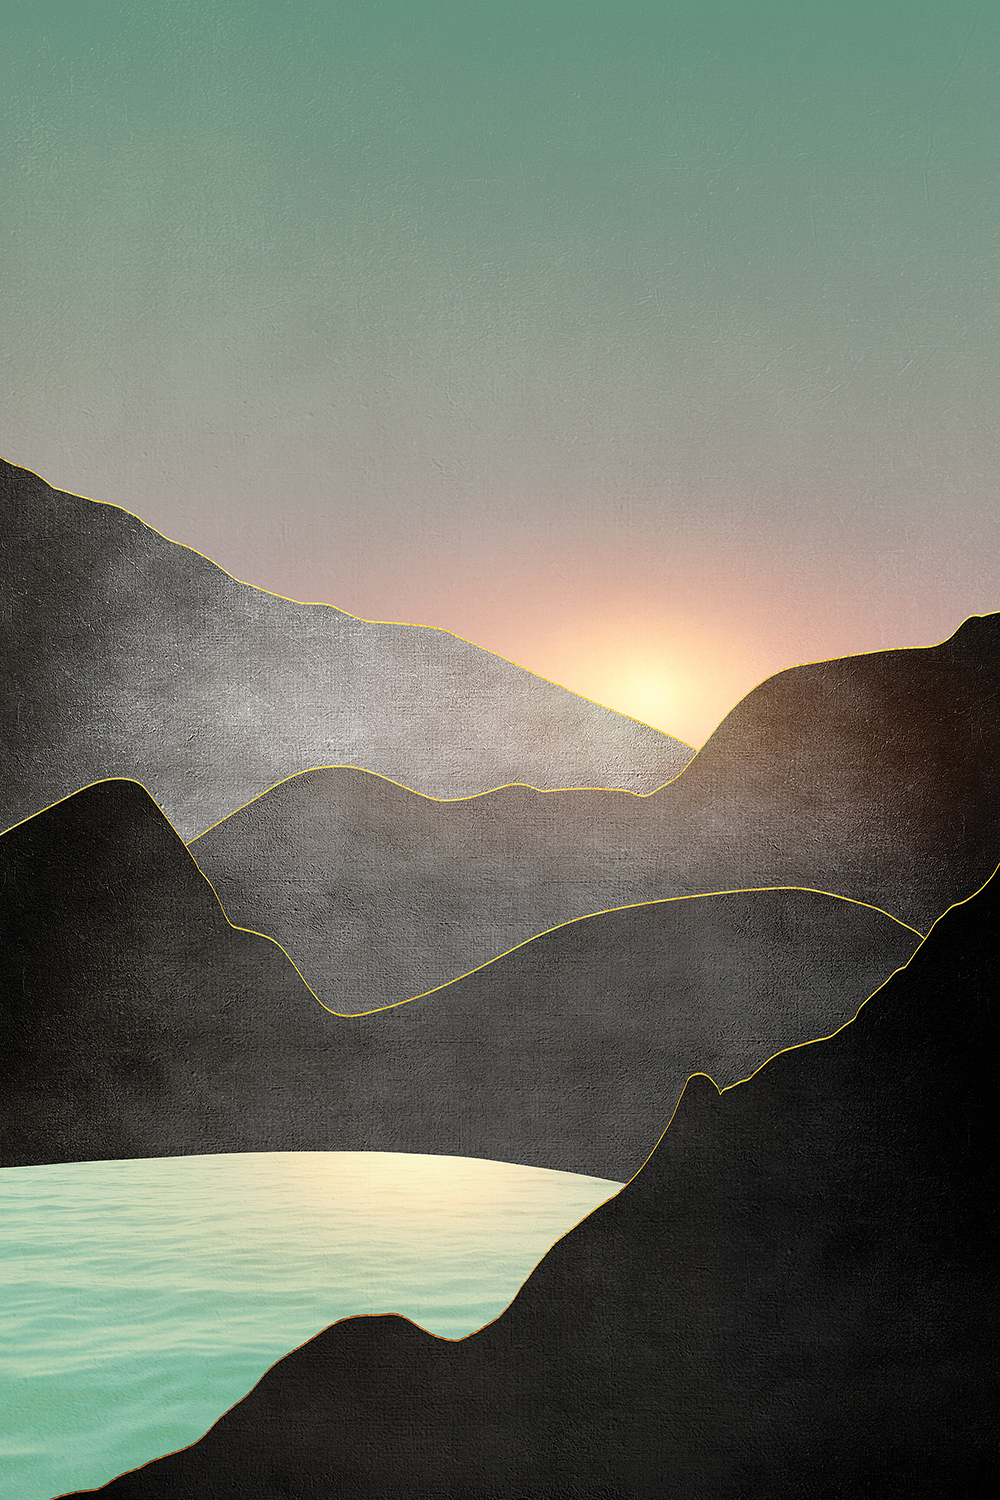 a sunset or sunrise over a few, minimalist mountains and a lake